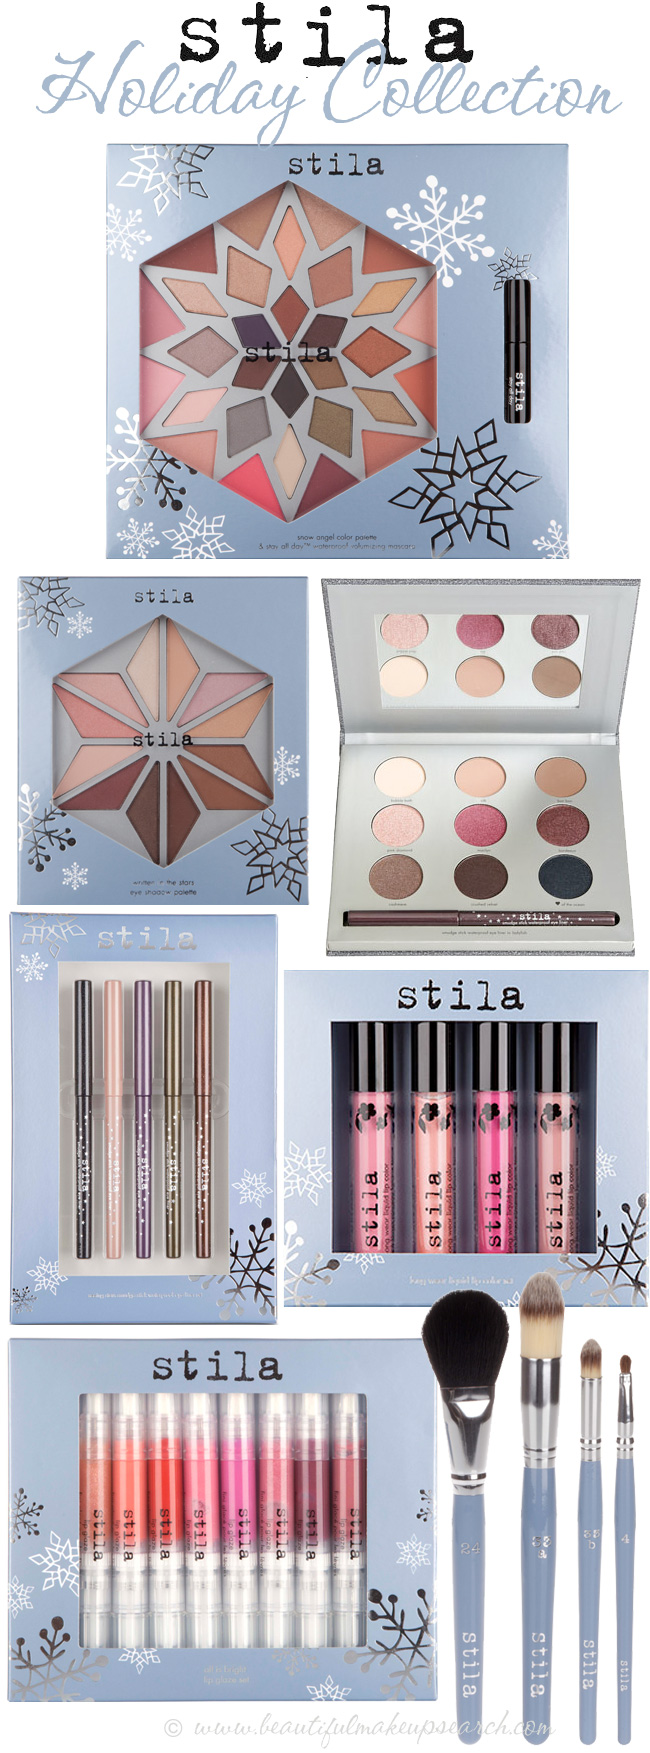 Stila Holiday Collection 2012